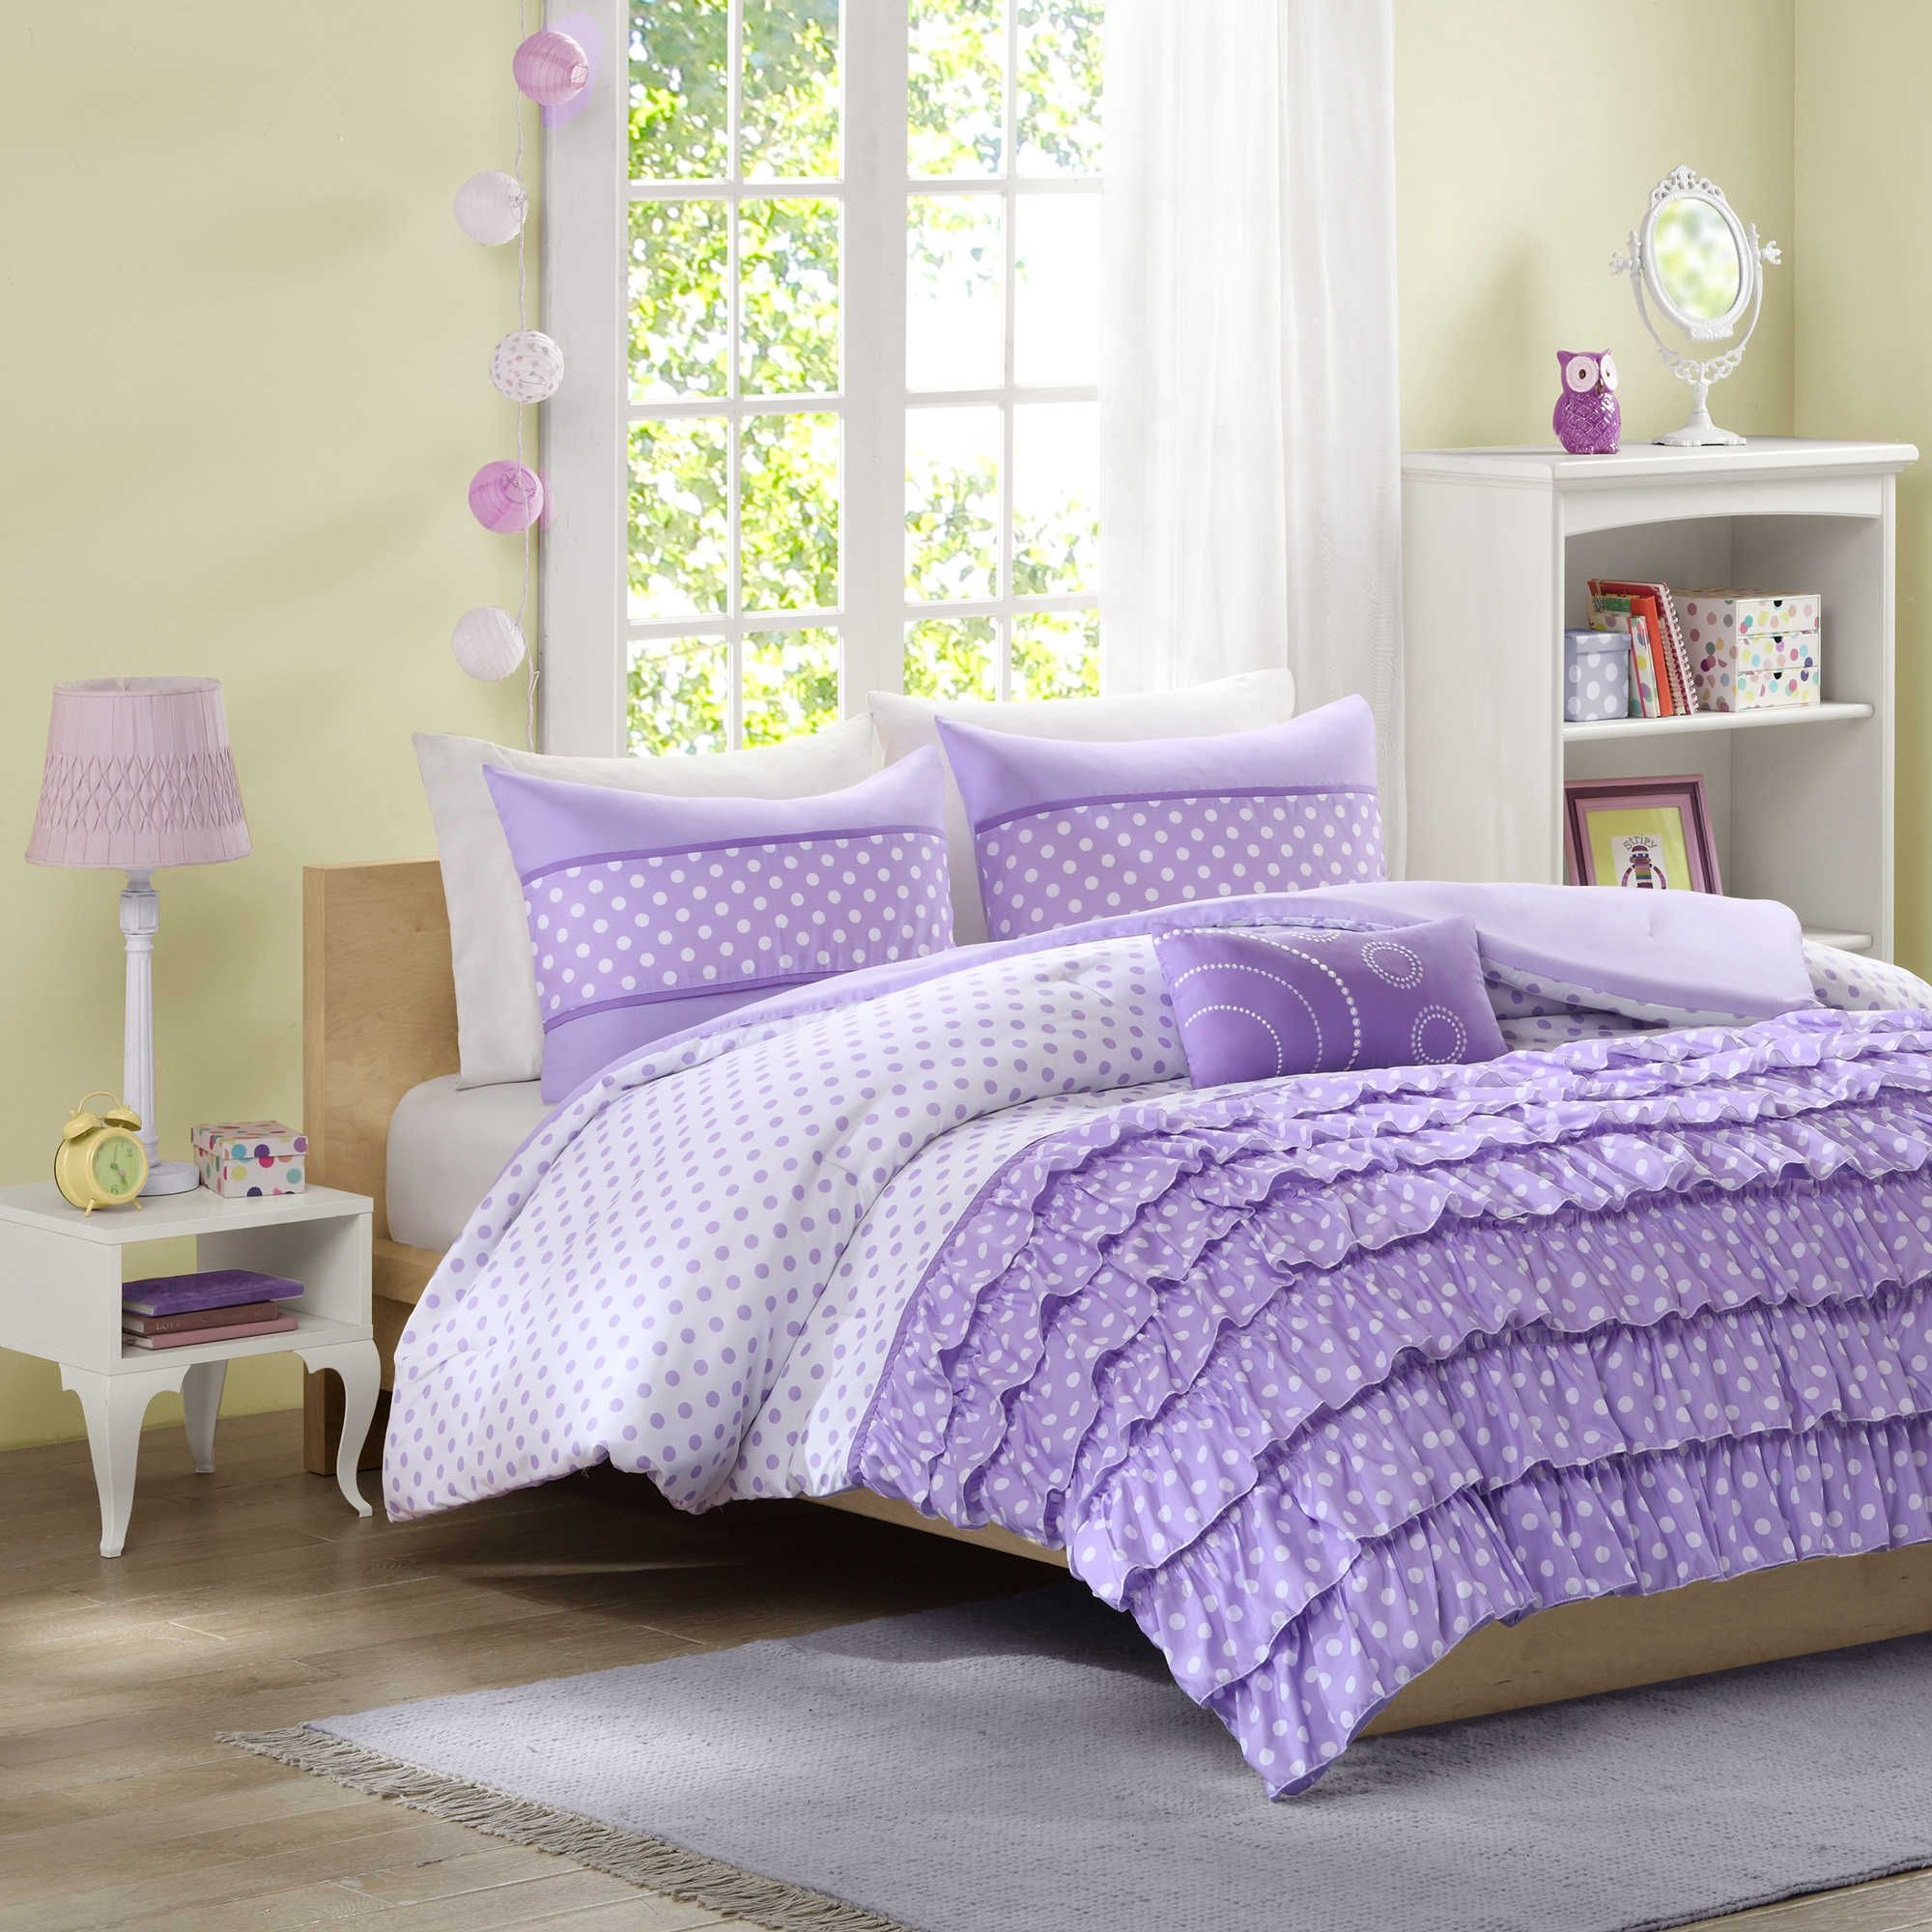 madison print piece amazon comforter home dp kitchen com grey lola set sets park queen purple